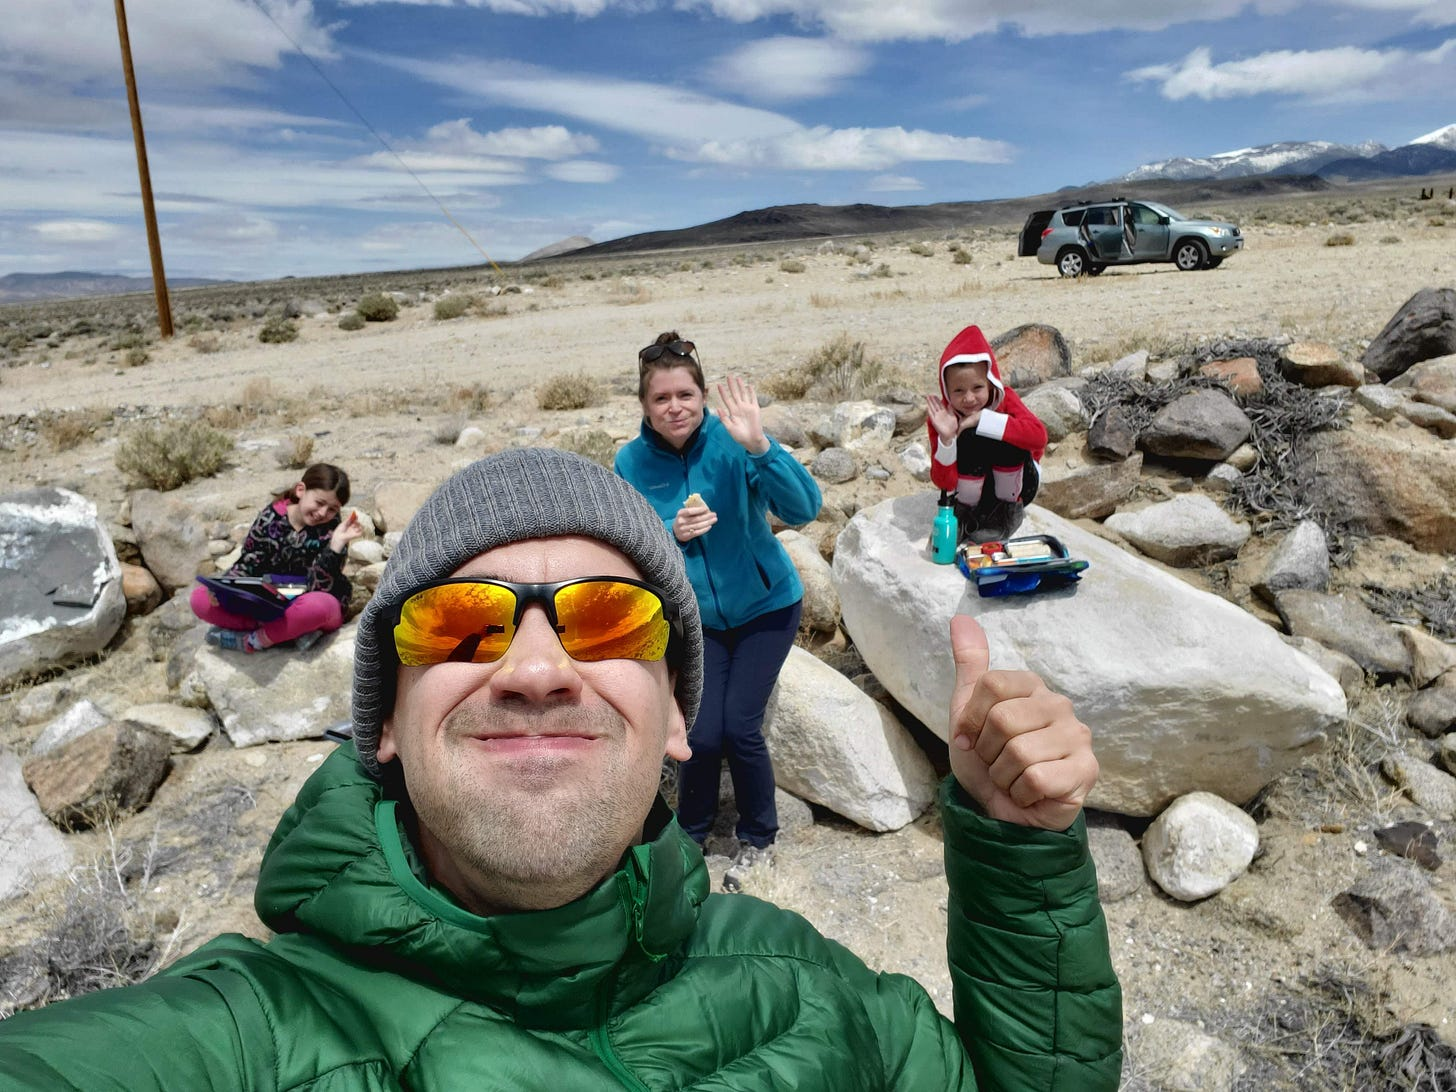 Eric taking a selfie with C, Charlotte, and L behind him sitting on rocks with their lunches in front of them.